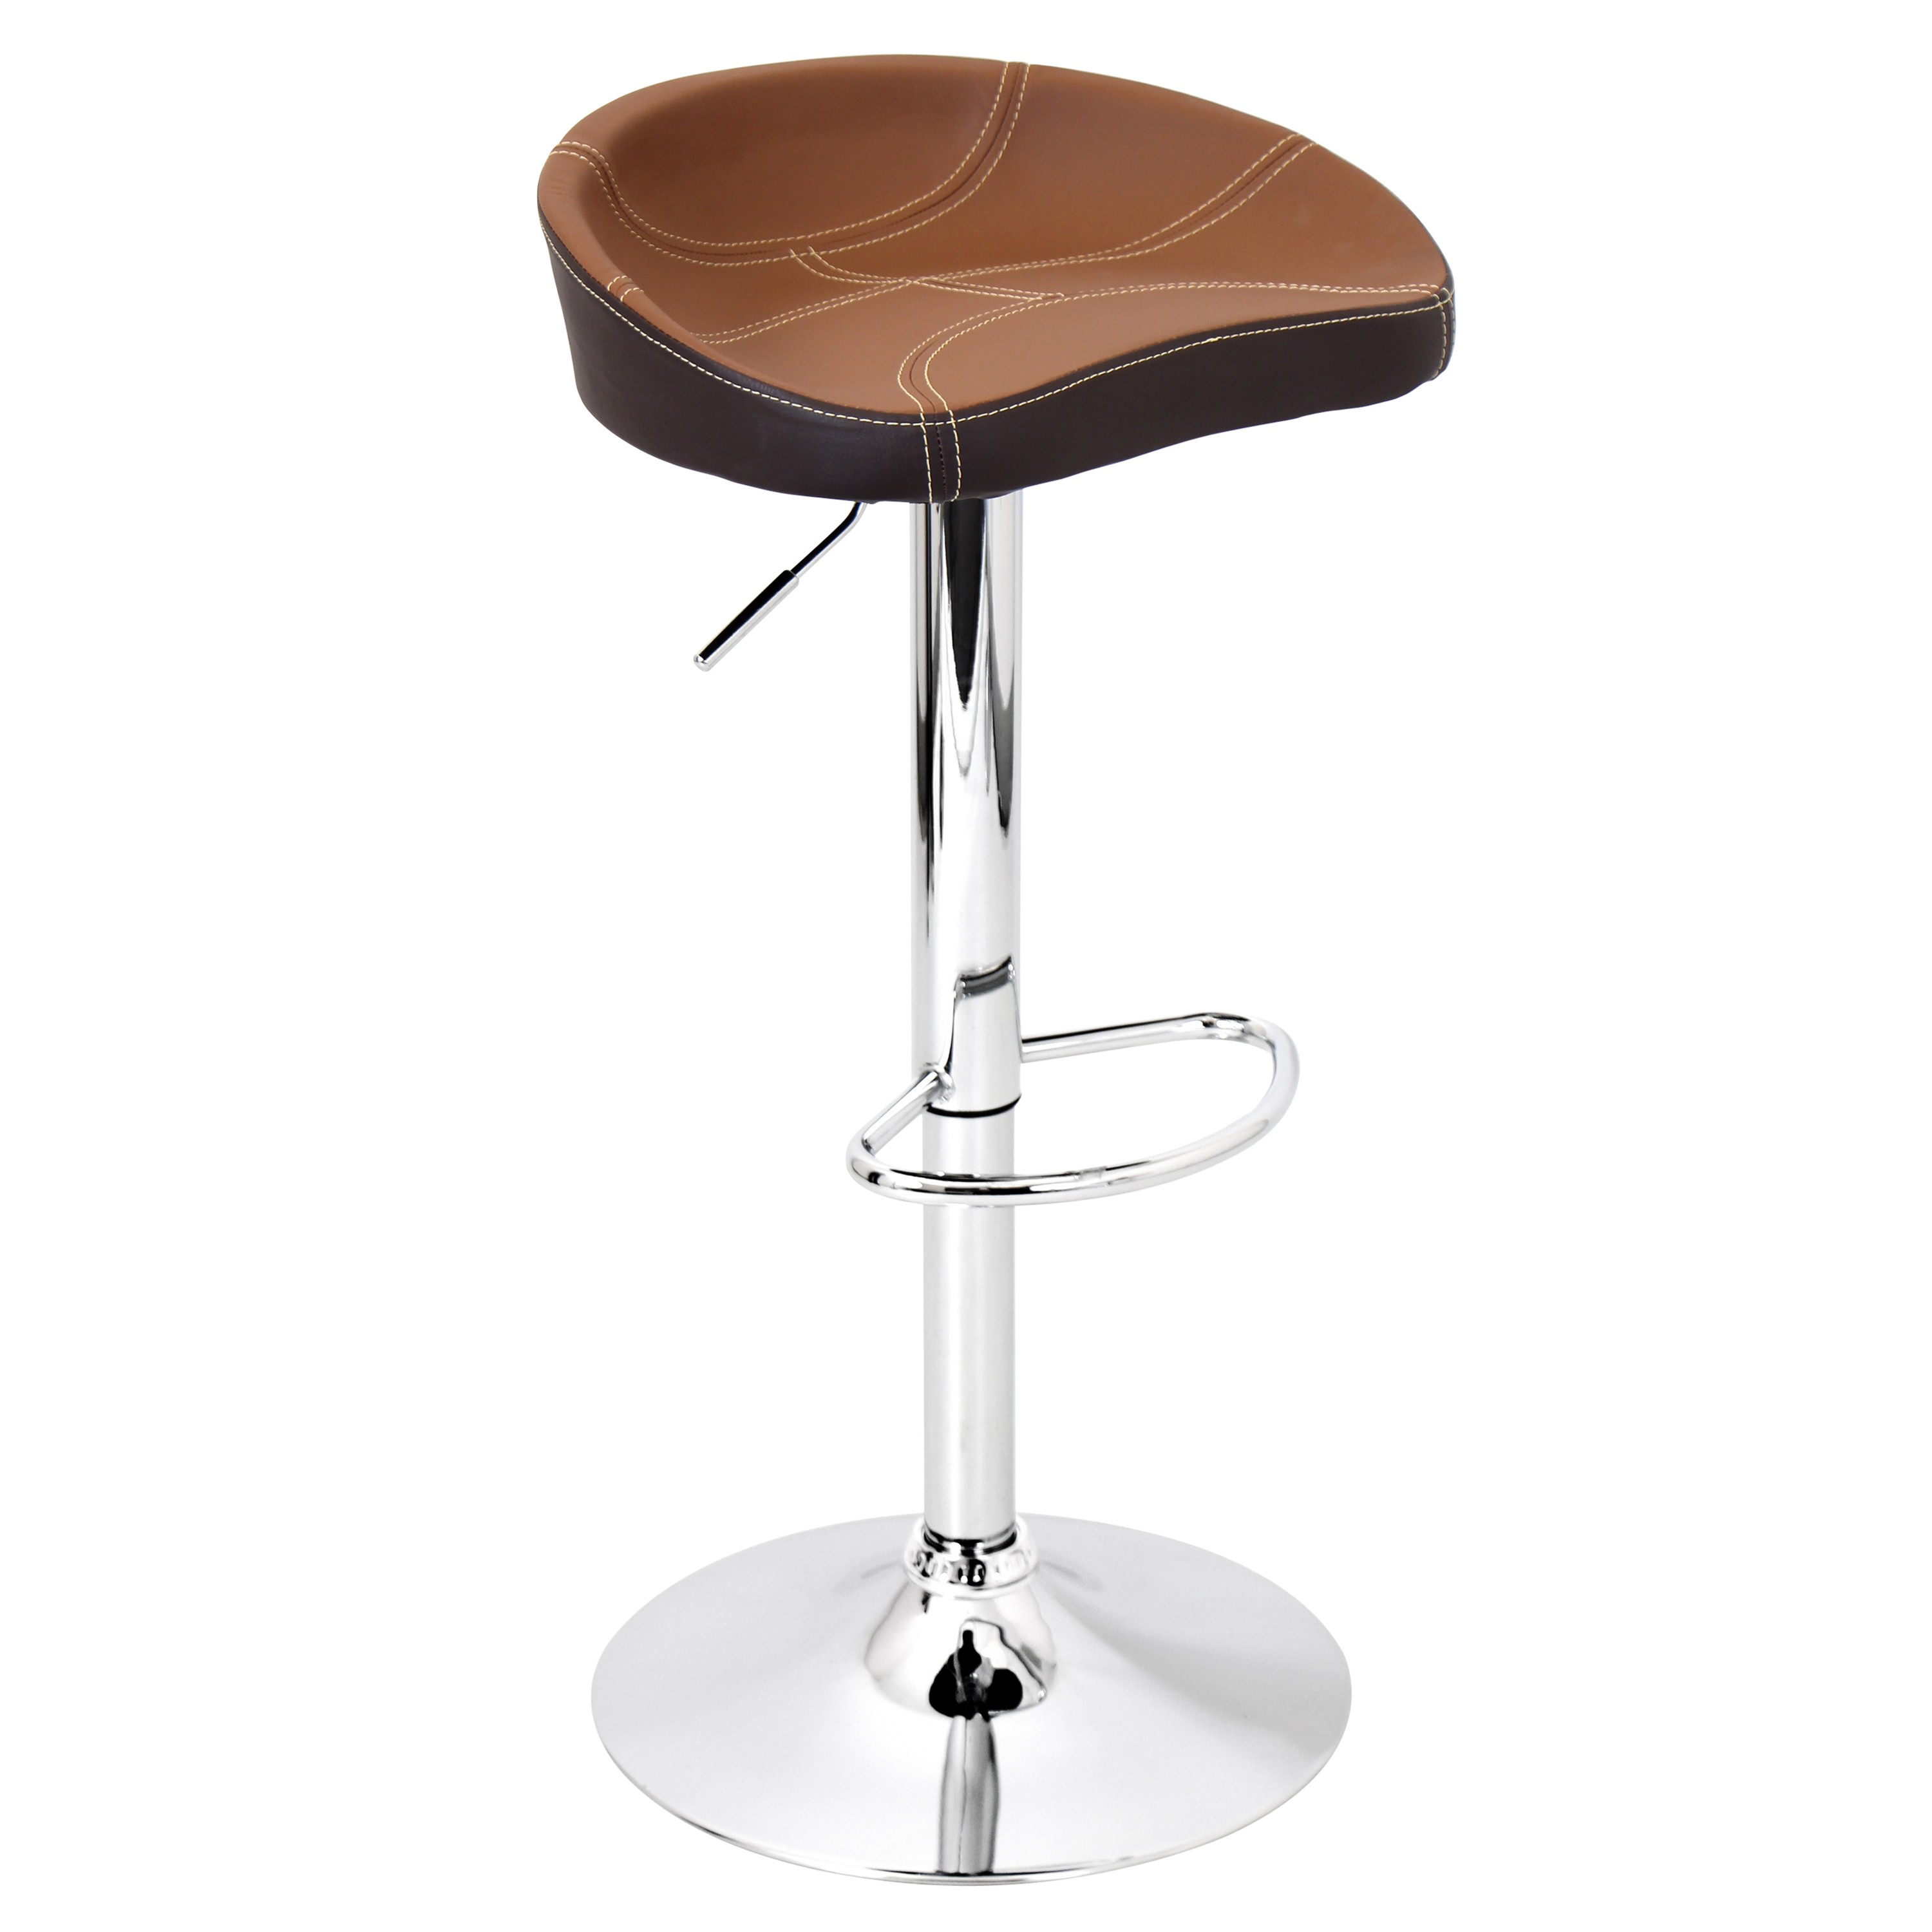 Slugger Bar Stool, Ale, Barstool, Upholstered Leatherette, Lumisource, 360  Swivel, Chrome, Hydraulic Bar Stool, Black, Kitchen Décor, Adjustable, ...